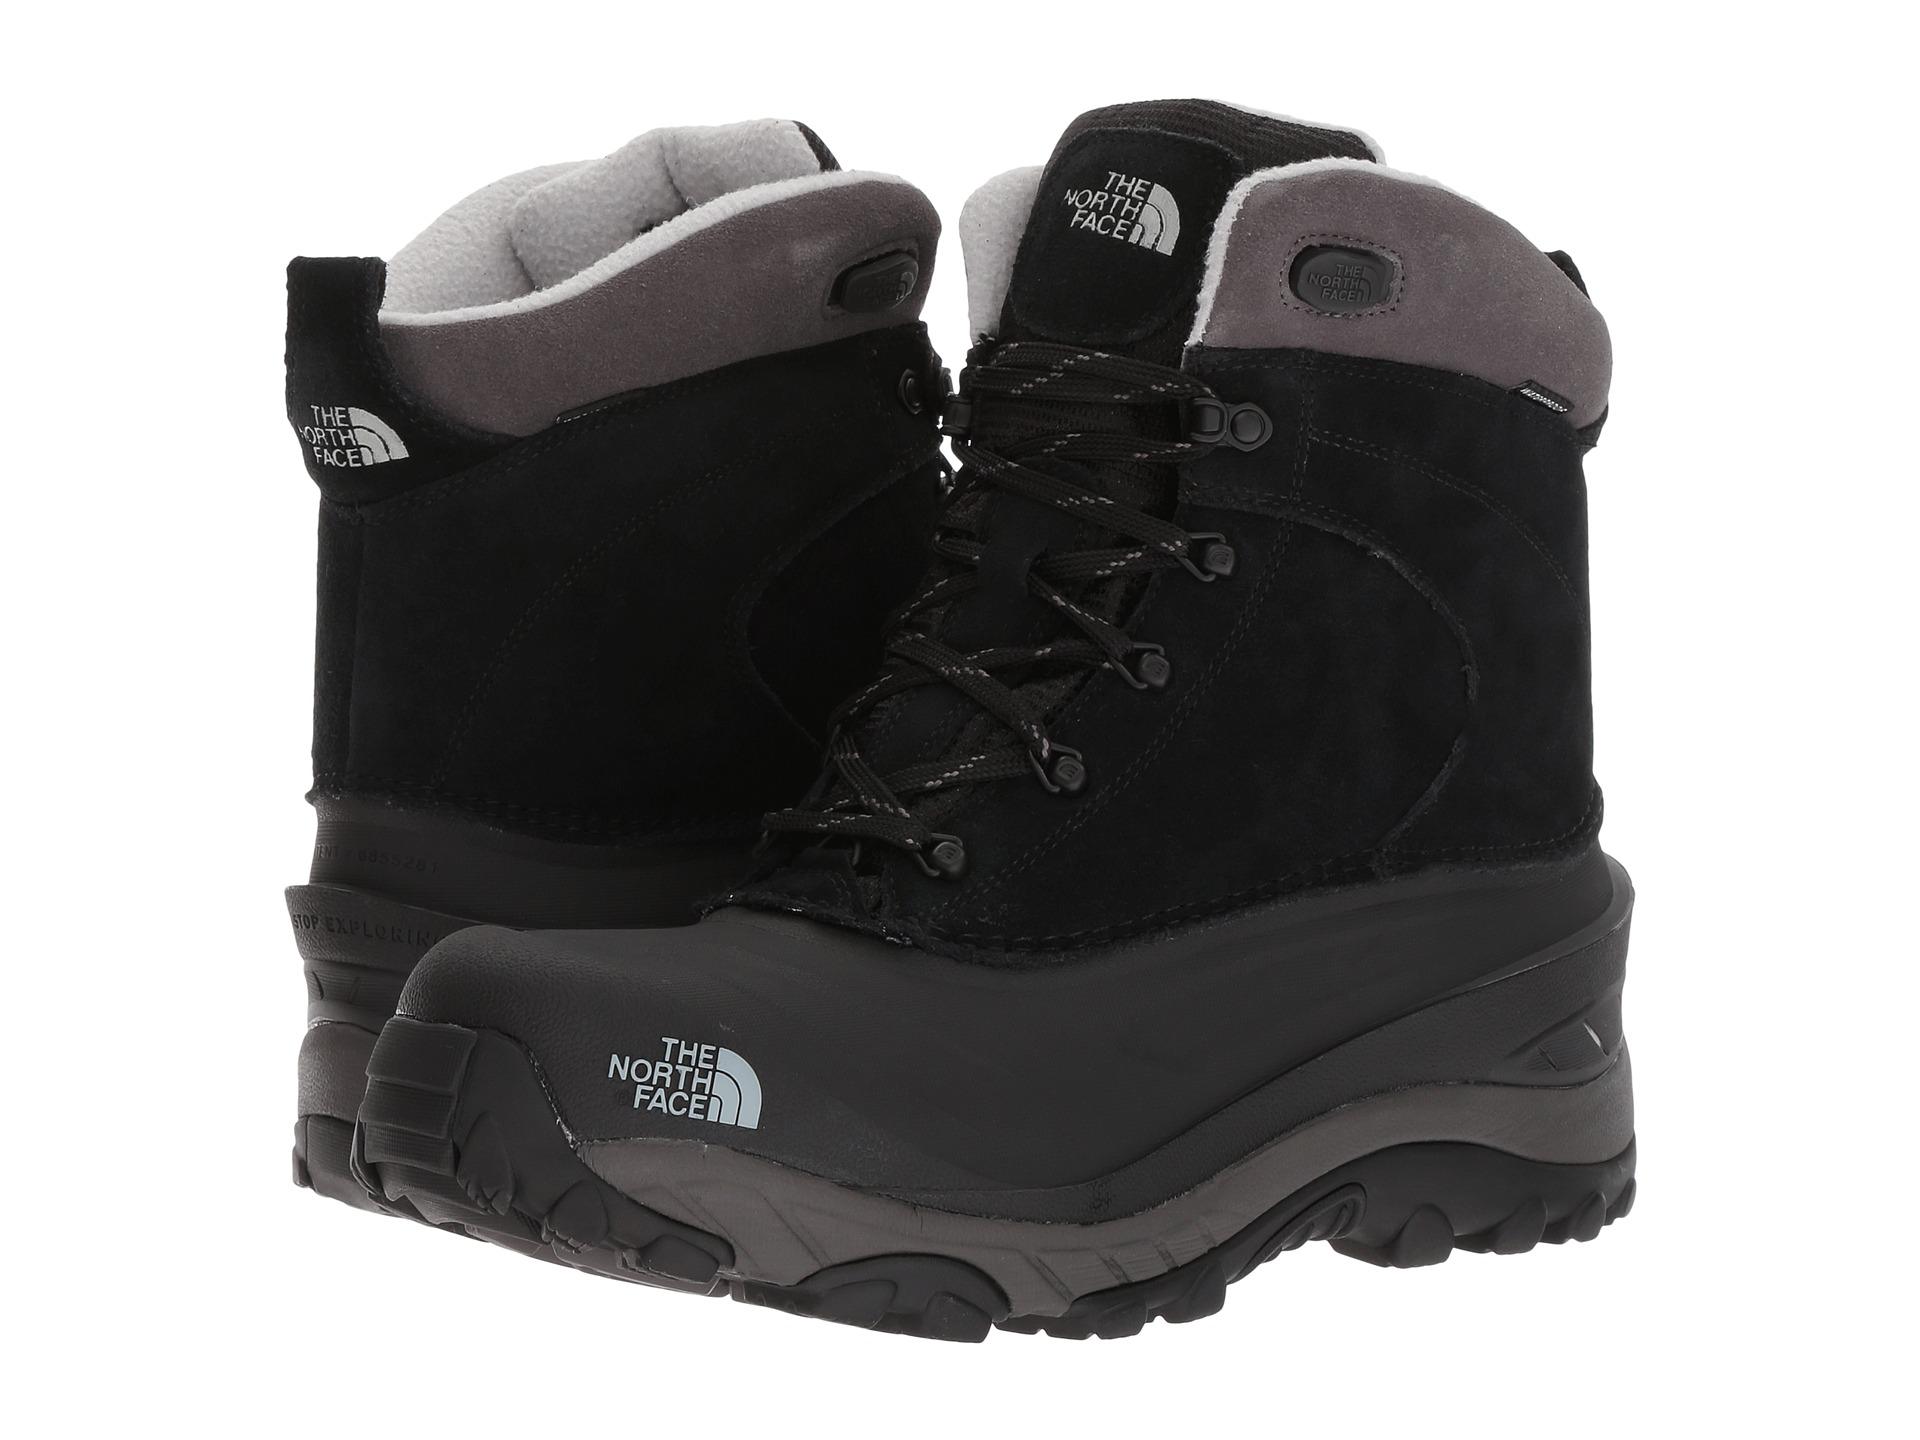 9fd63d0a5 Details about THE NORTH FACE Chilkat III Men   TNF Black / Dark Gull Grey  (NF0A39V6)